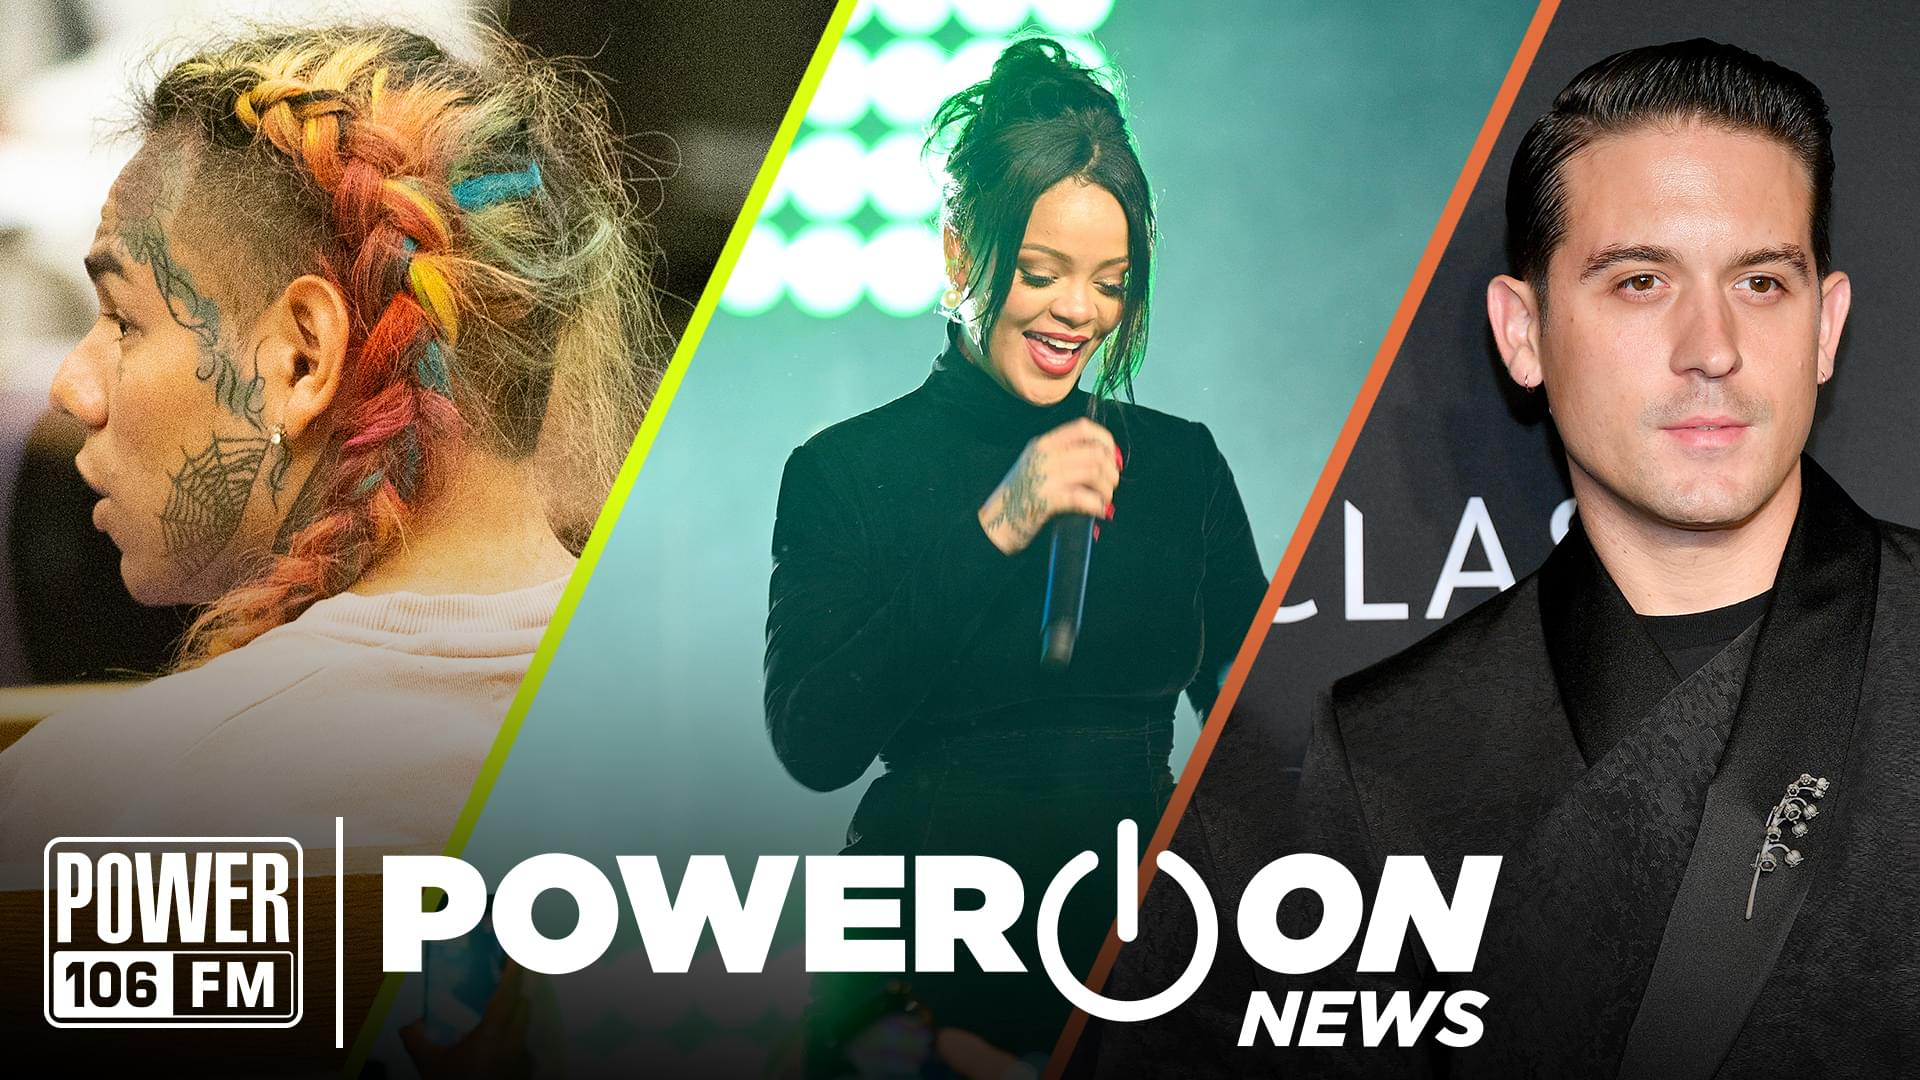 #PowerOn: G-Eazy Drops 'B-Sides', Riri Raises Eyebrows at Diamond Ball & Tekashi Snitches